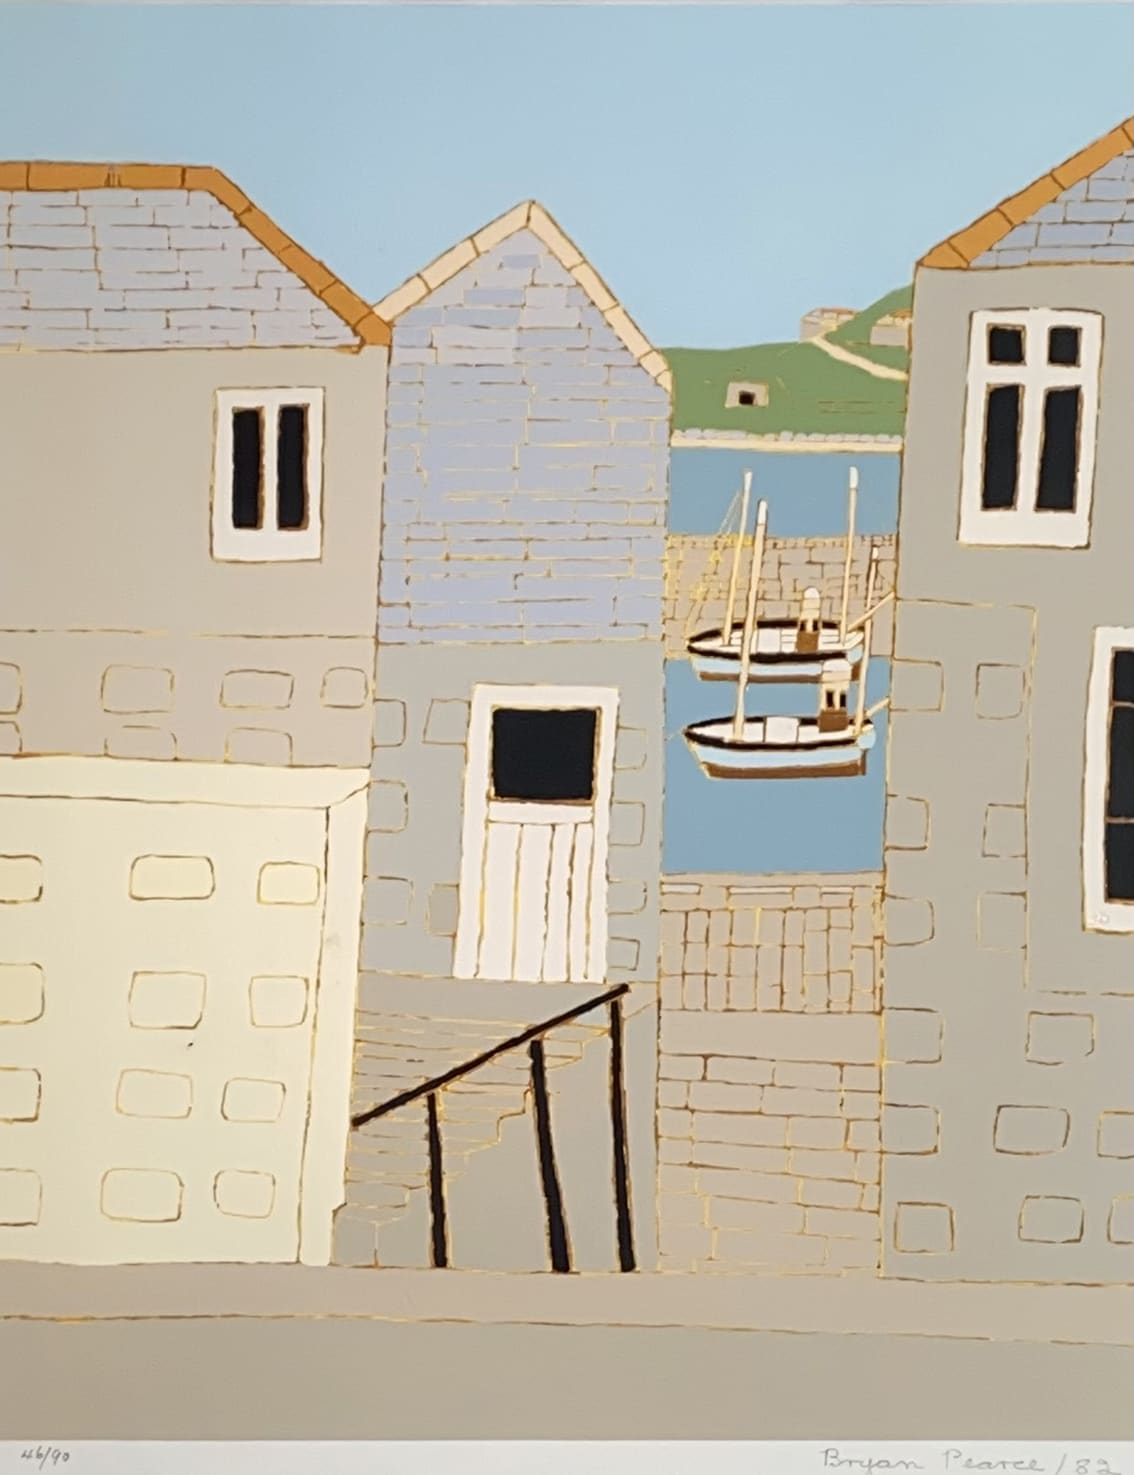 """<span class=""""link fancybox-details-link""""><a href=""""/artists/85-bryan-pearce/works/7482-bryan-pearce-bethesda-st-ives-1970/"""">View Detail Page</a></span><div class=""""artist""""><strong>Bryan Pearce</strong></div> 1929-2007 <div class=""""title""""><em>Bethesda, St Ives</em>, 1970</div> <div class=""""signed_and_dated"""">signed, dated and numbered from the edition of 90 in pencil</div> <div class=""""medium"""">silkscreen print on paper</div> <div class=""""dimensions"""">44 x 35 cm unframed<br /> 60 x 52 cm framed</div> <div class=""""edition_details"""">edition 46 of 90</div><div class=""""copyright_line"""">Copyright The Artist</div>"""